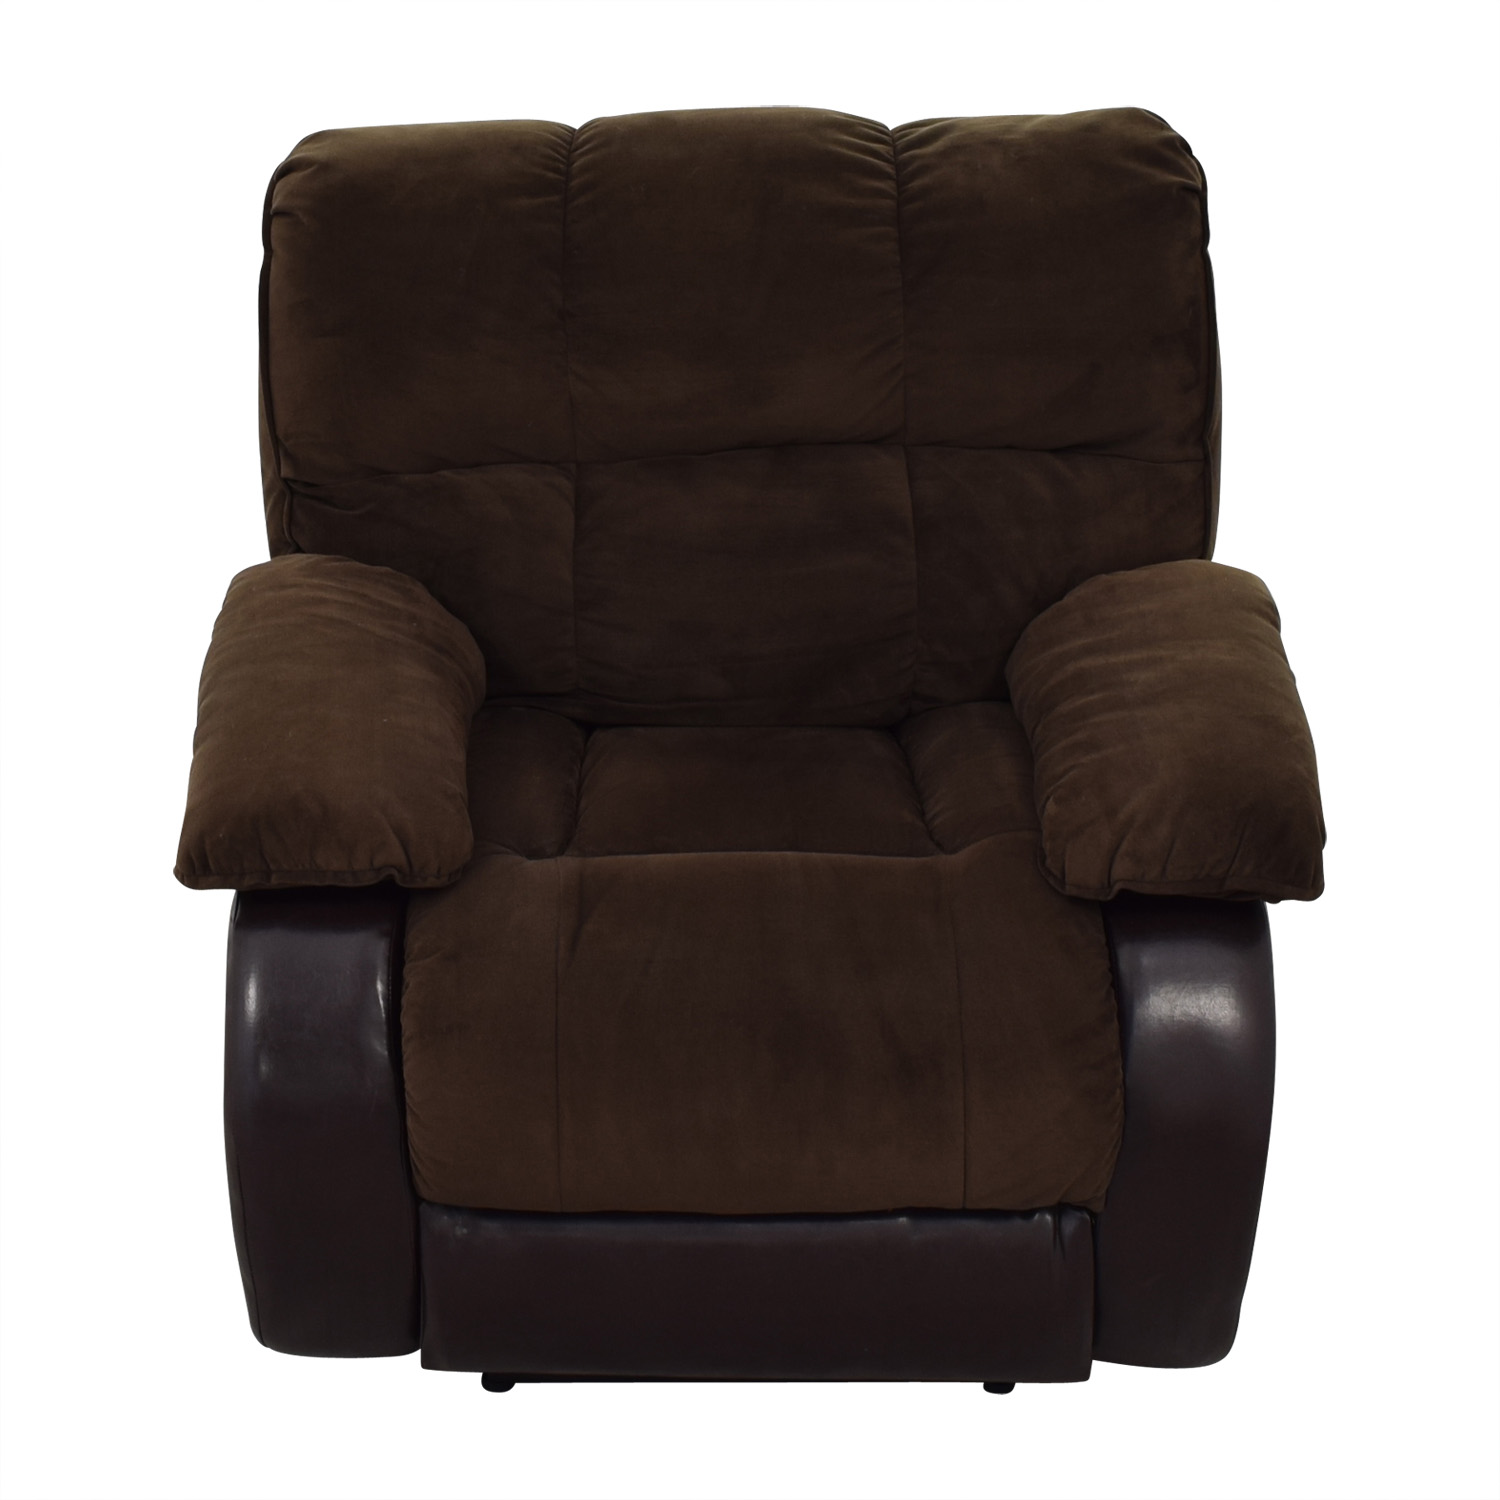 Raymour & Flanigan Raymour & Flanigan Recliner brown